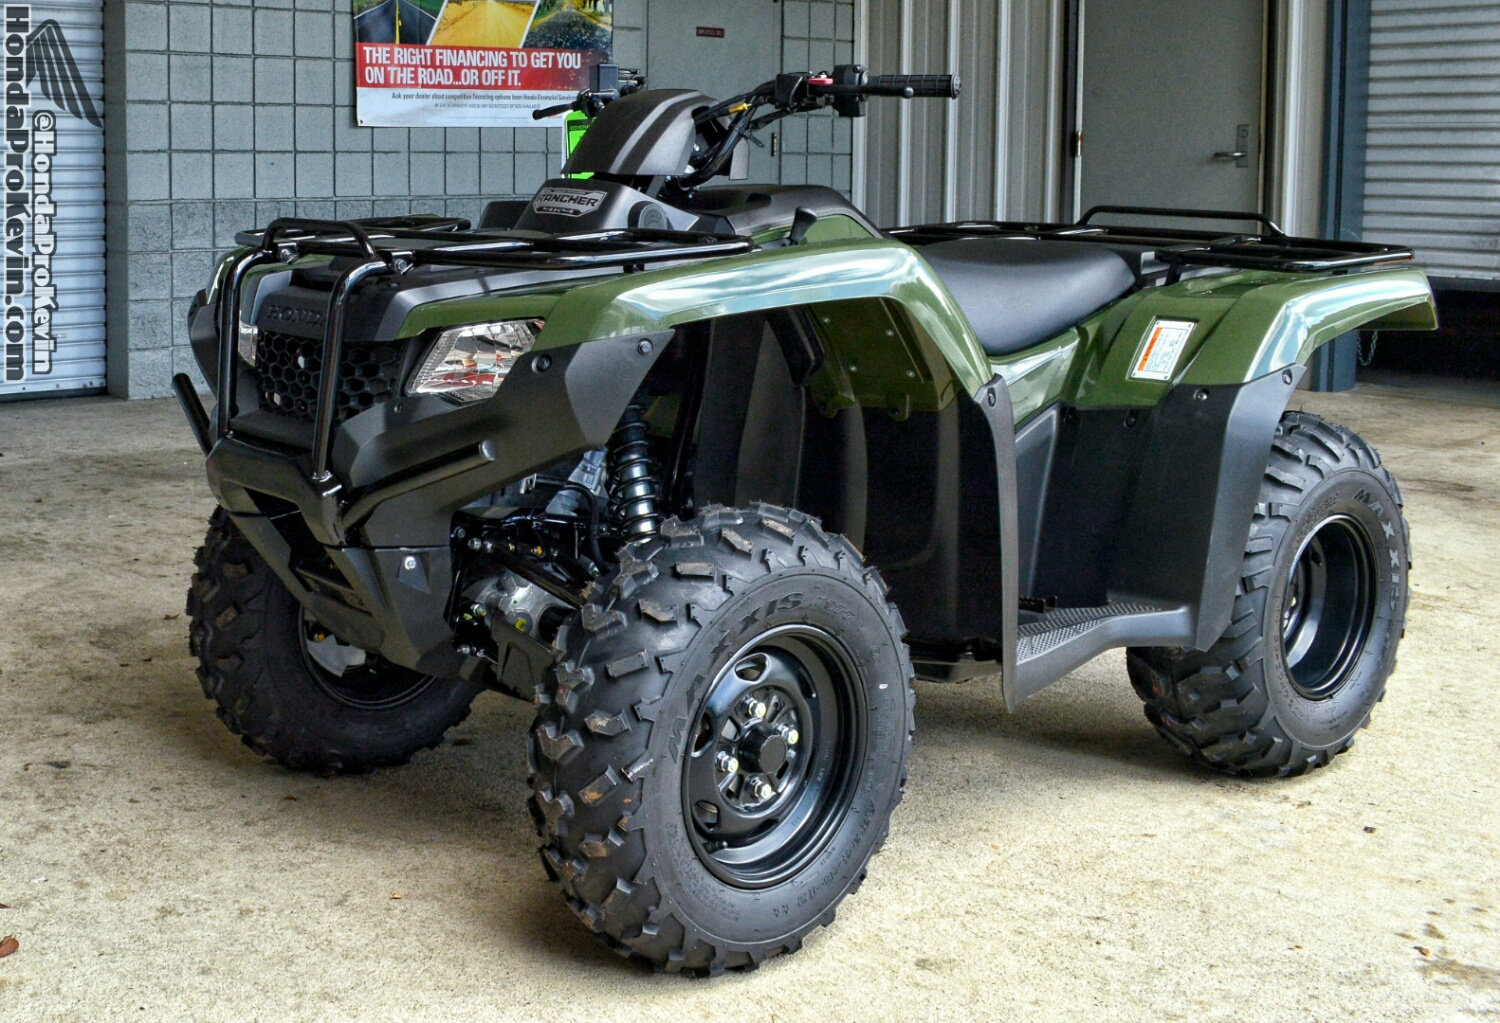 2016 Honda Rancher 420 4x4 Review Specs Pictures Videos 420cc Engine Diagram 2019 Es Atv Four Wheeler Buyers Guide